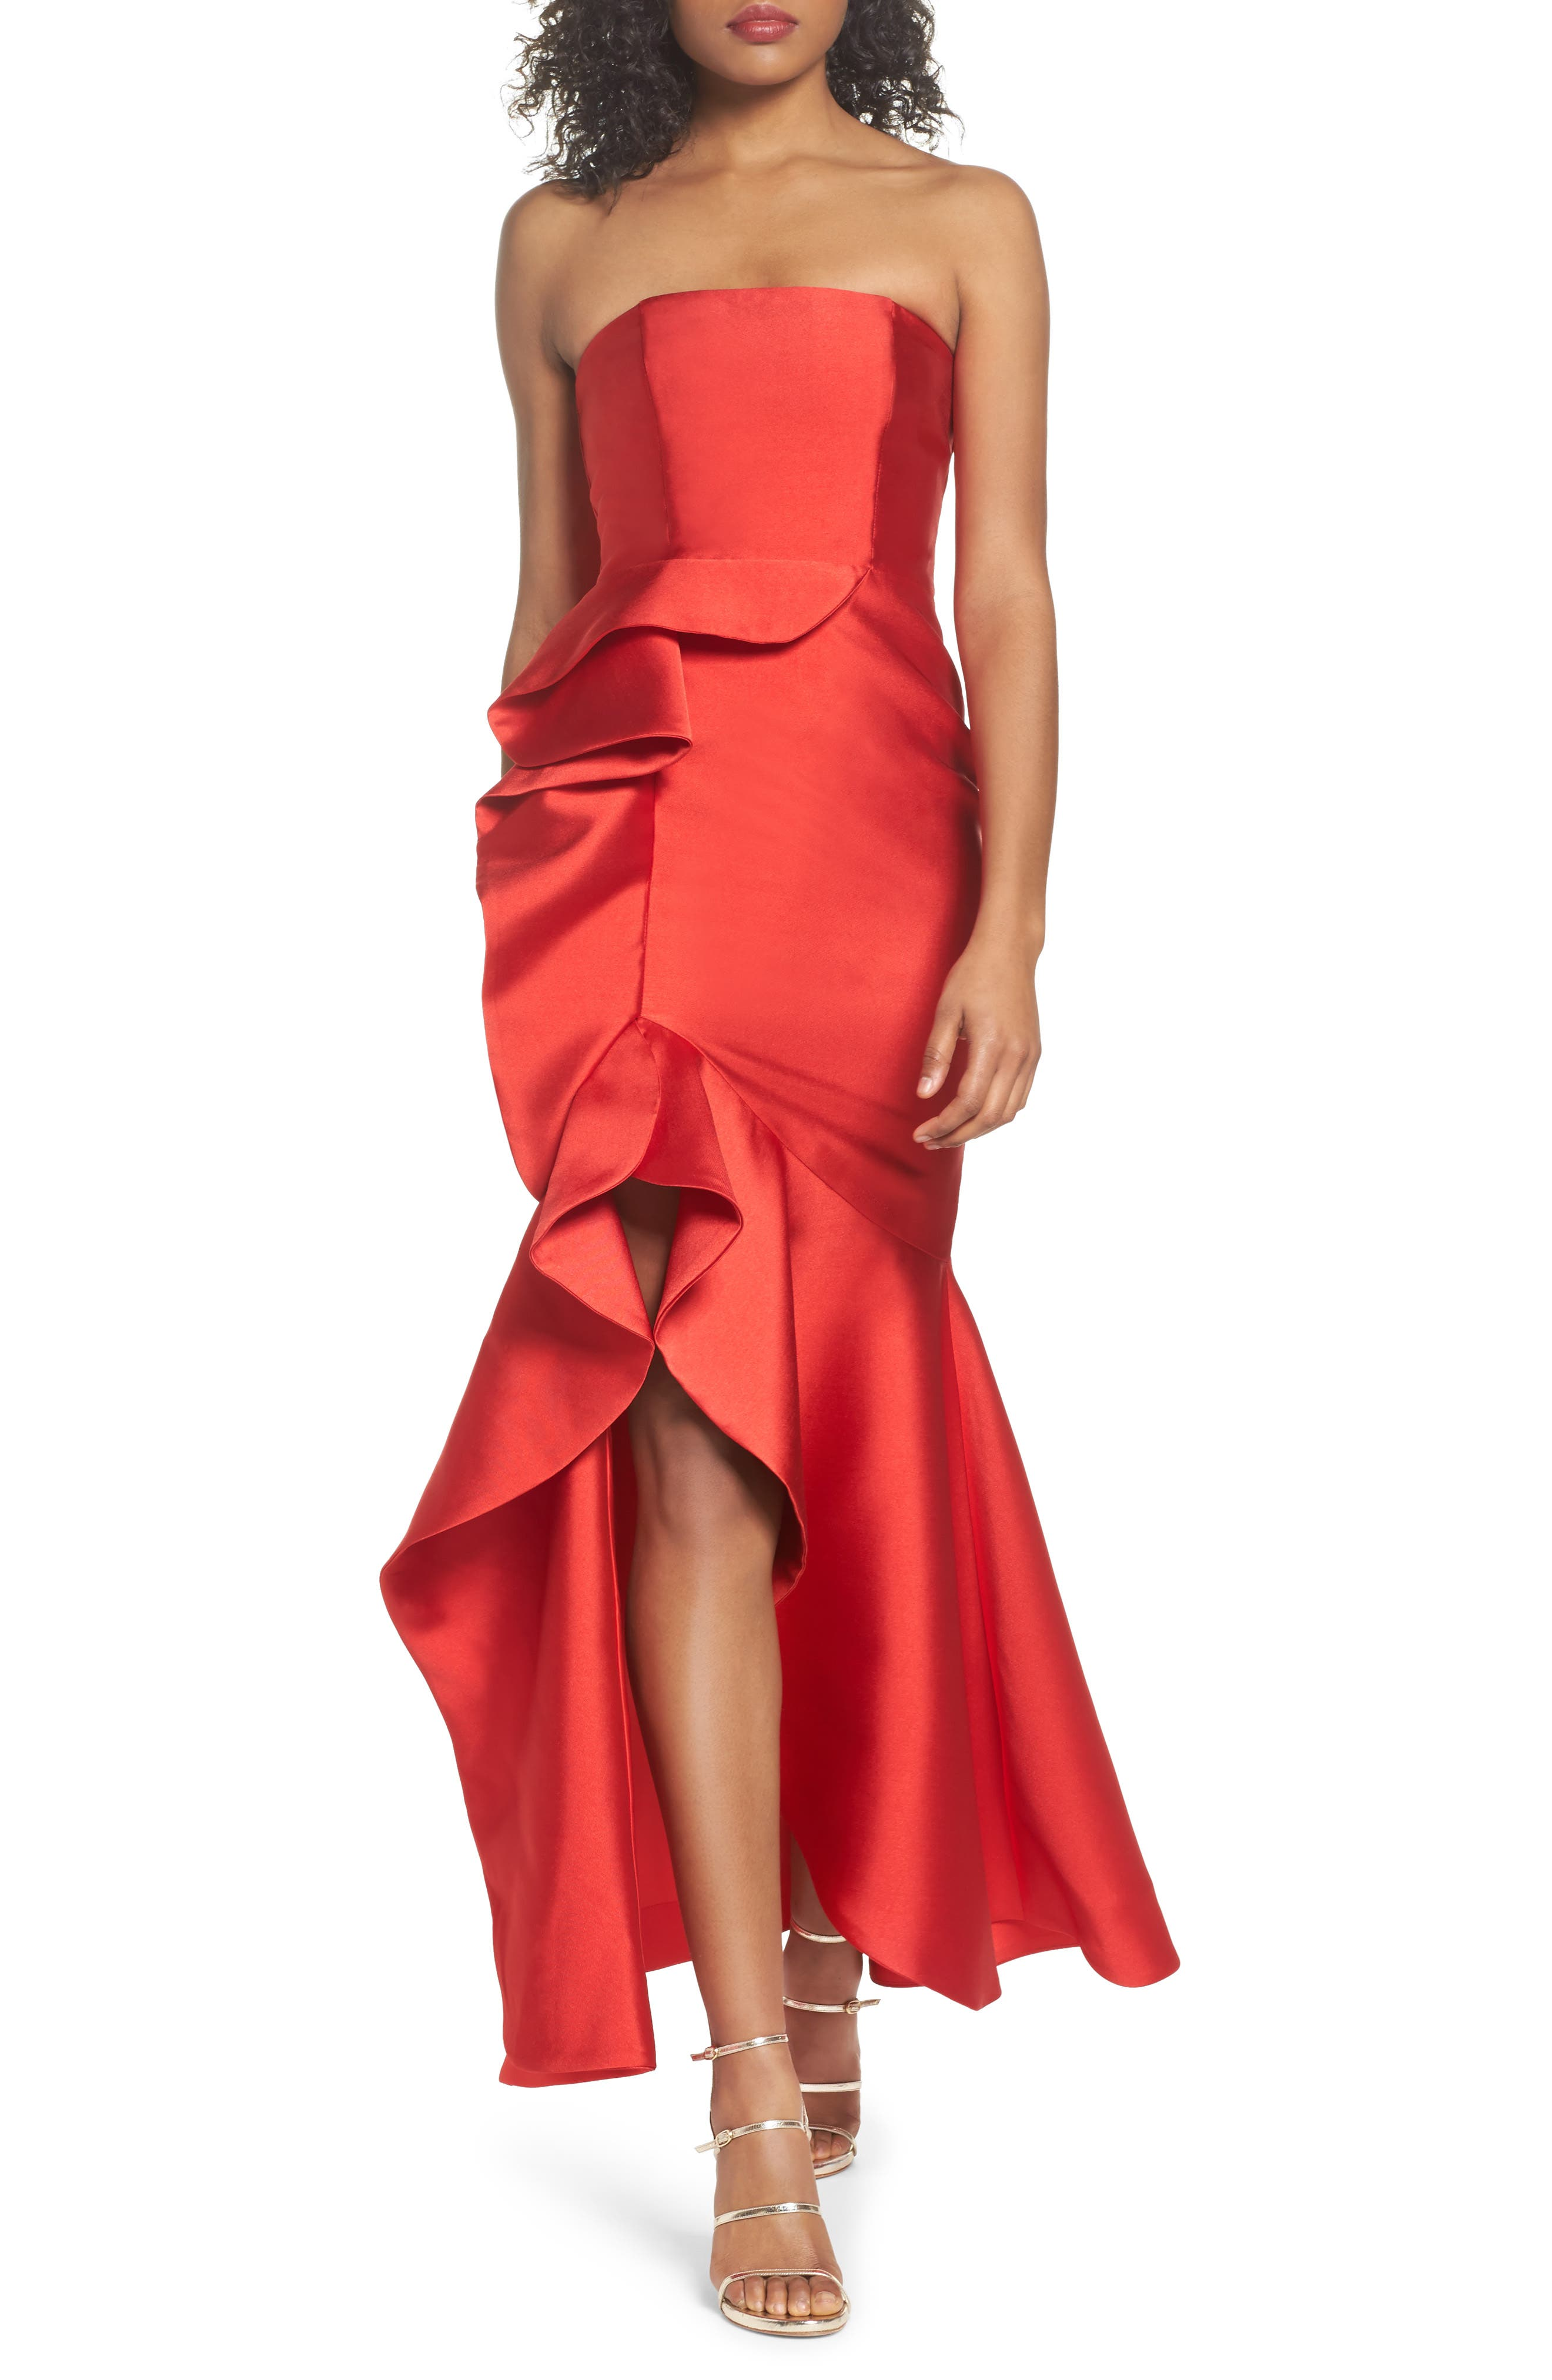 Sellers High/Low Mermaid Gown,                             Main thumbnail 1, color,                             Red